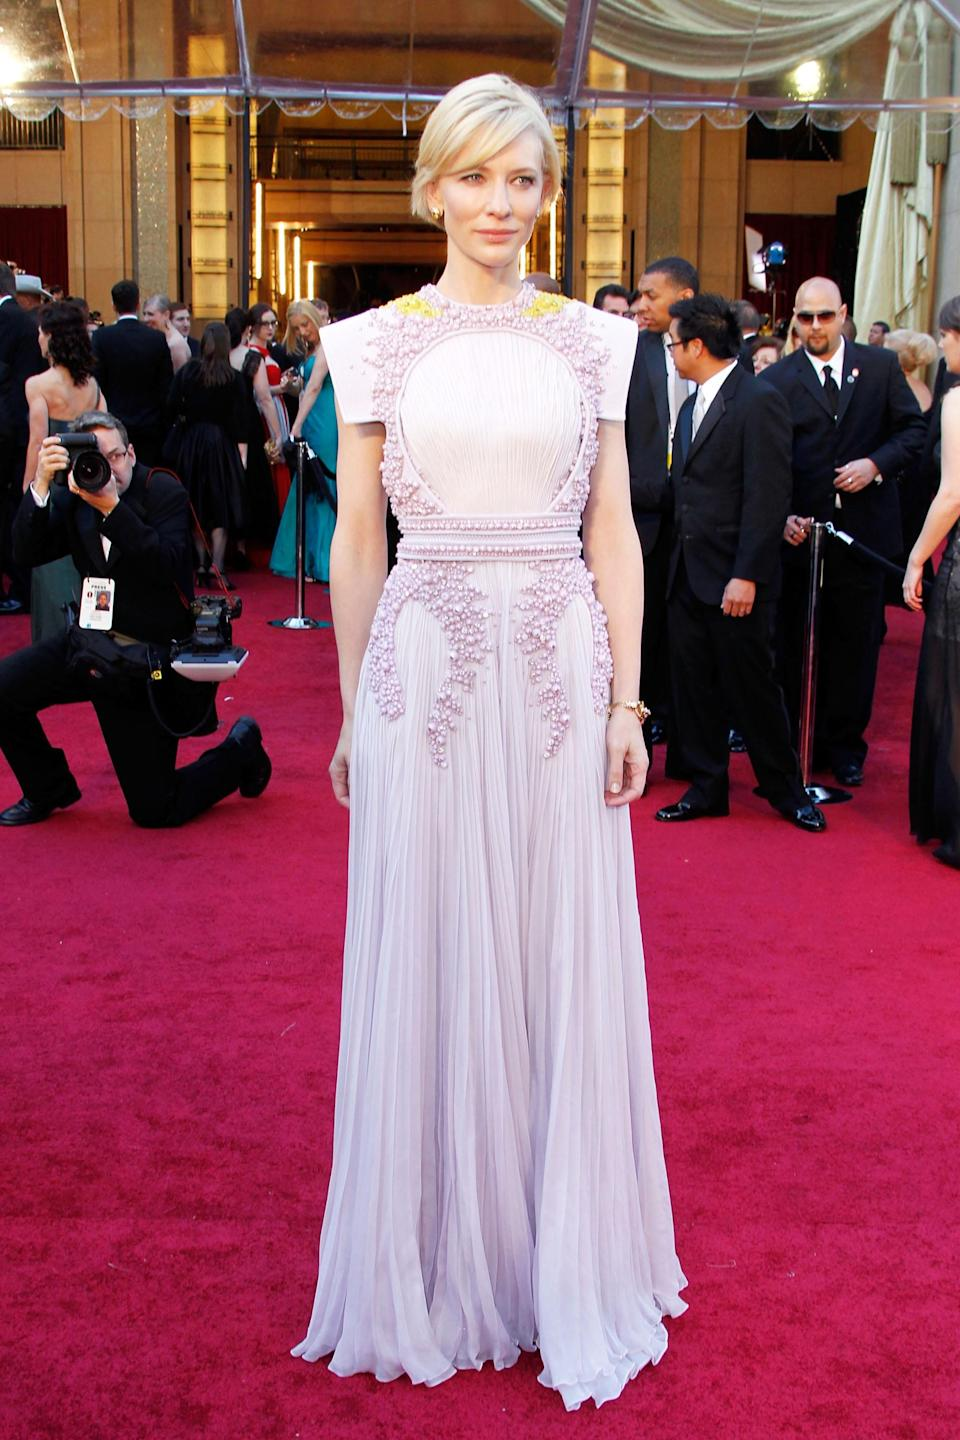 <h2>Cate Blanchett, 2011<br></h2><br>In this lavender Haute Couture gown by Givenchy, Cate Blanchett wasn't just an award-winning actress — she's a damn fashion <em>icon.</em><br><br><em>Cate Blanchett in Givenchy Haute Couture.</em>